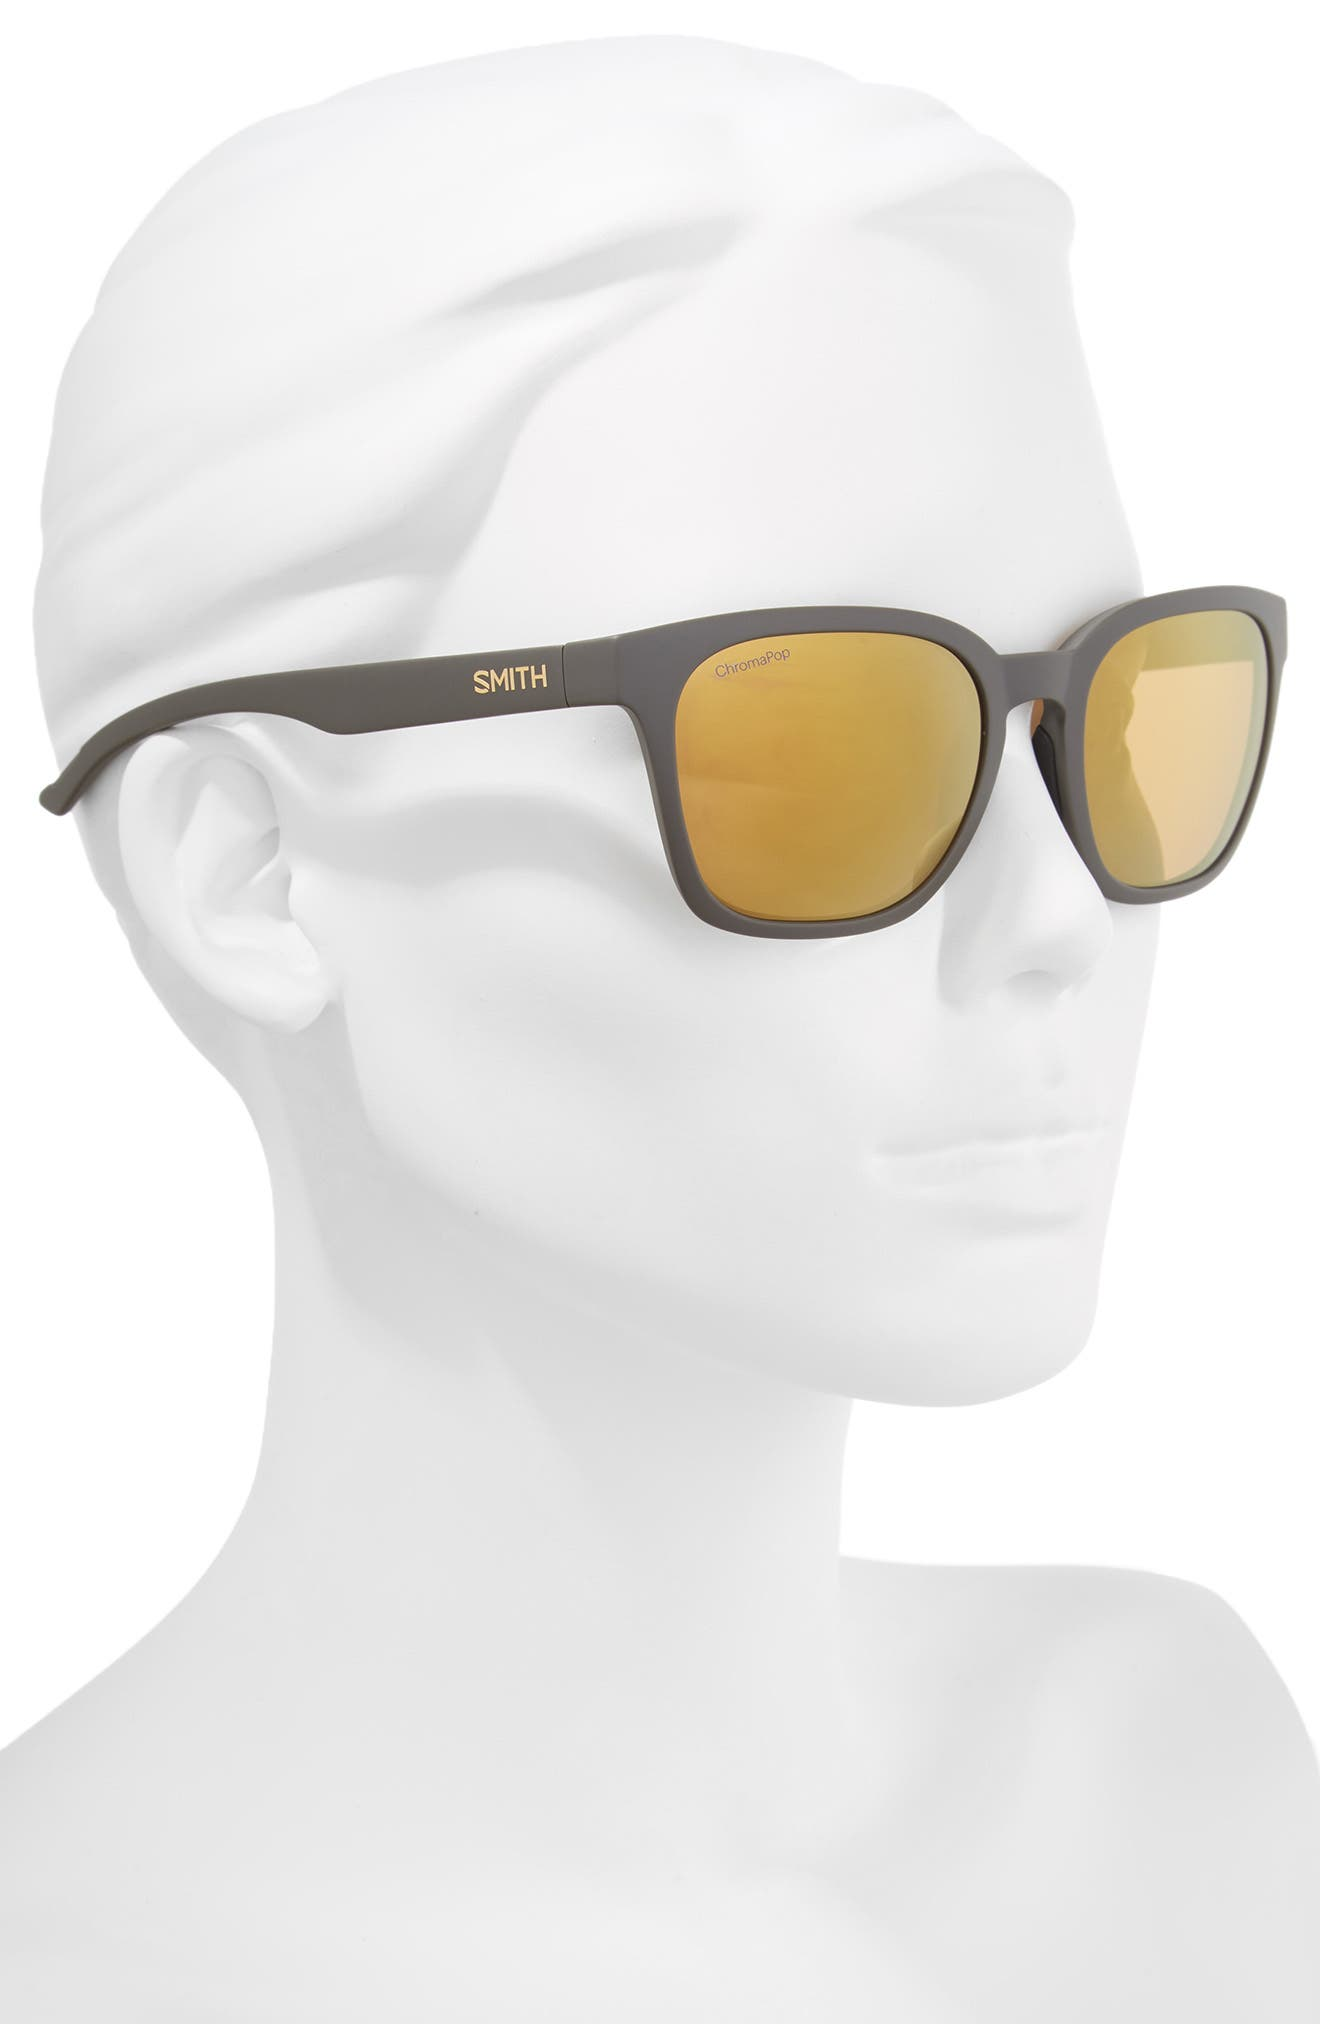 Founder 55mm ChromaPop<sup>™</sup> Polarized Sunglasses,                             Alternate thumbnail 2, color,                             019